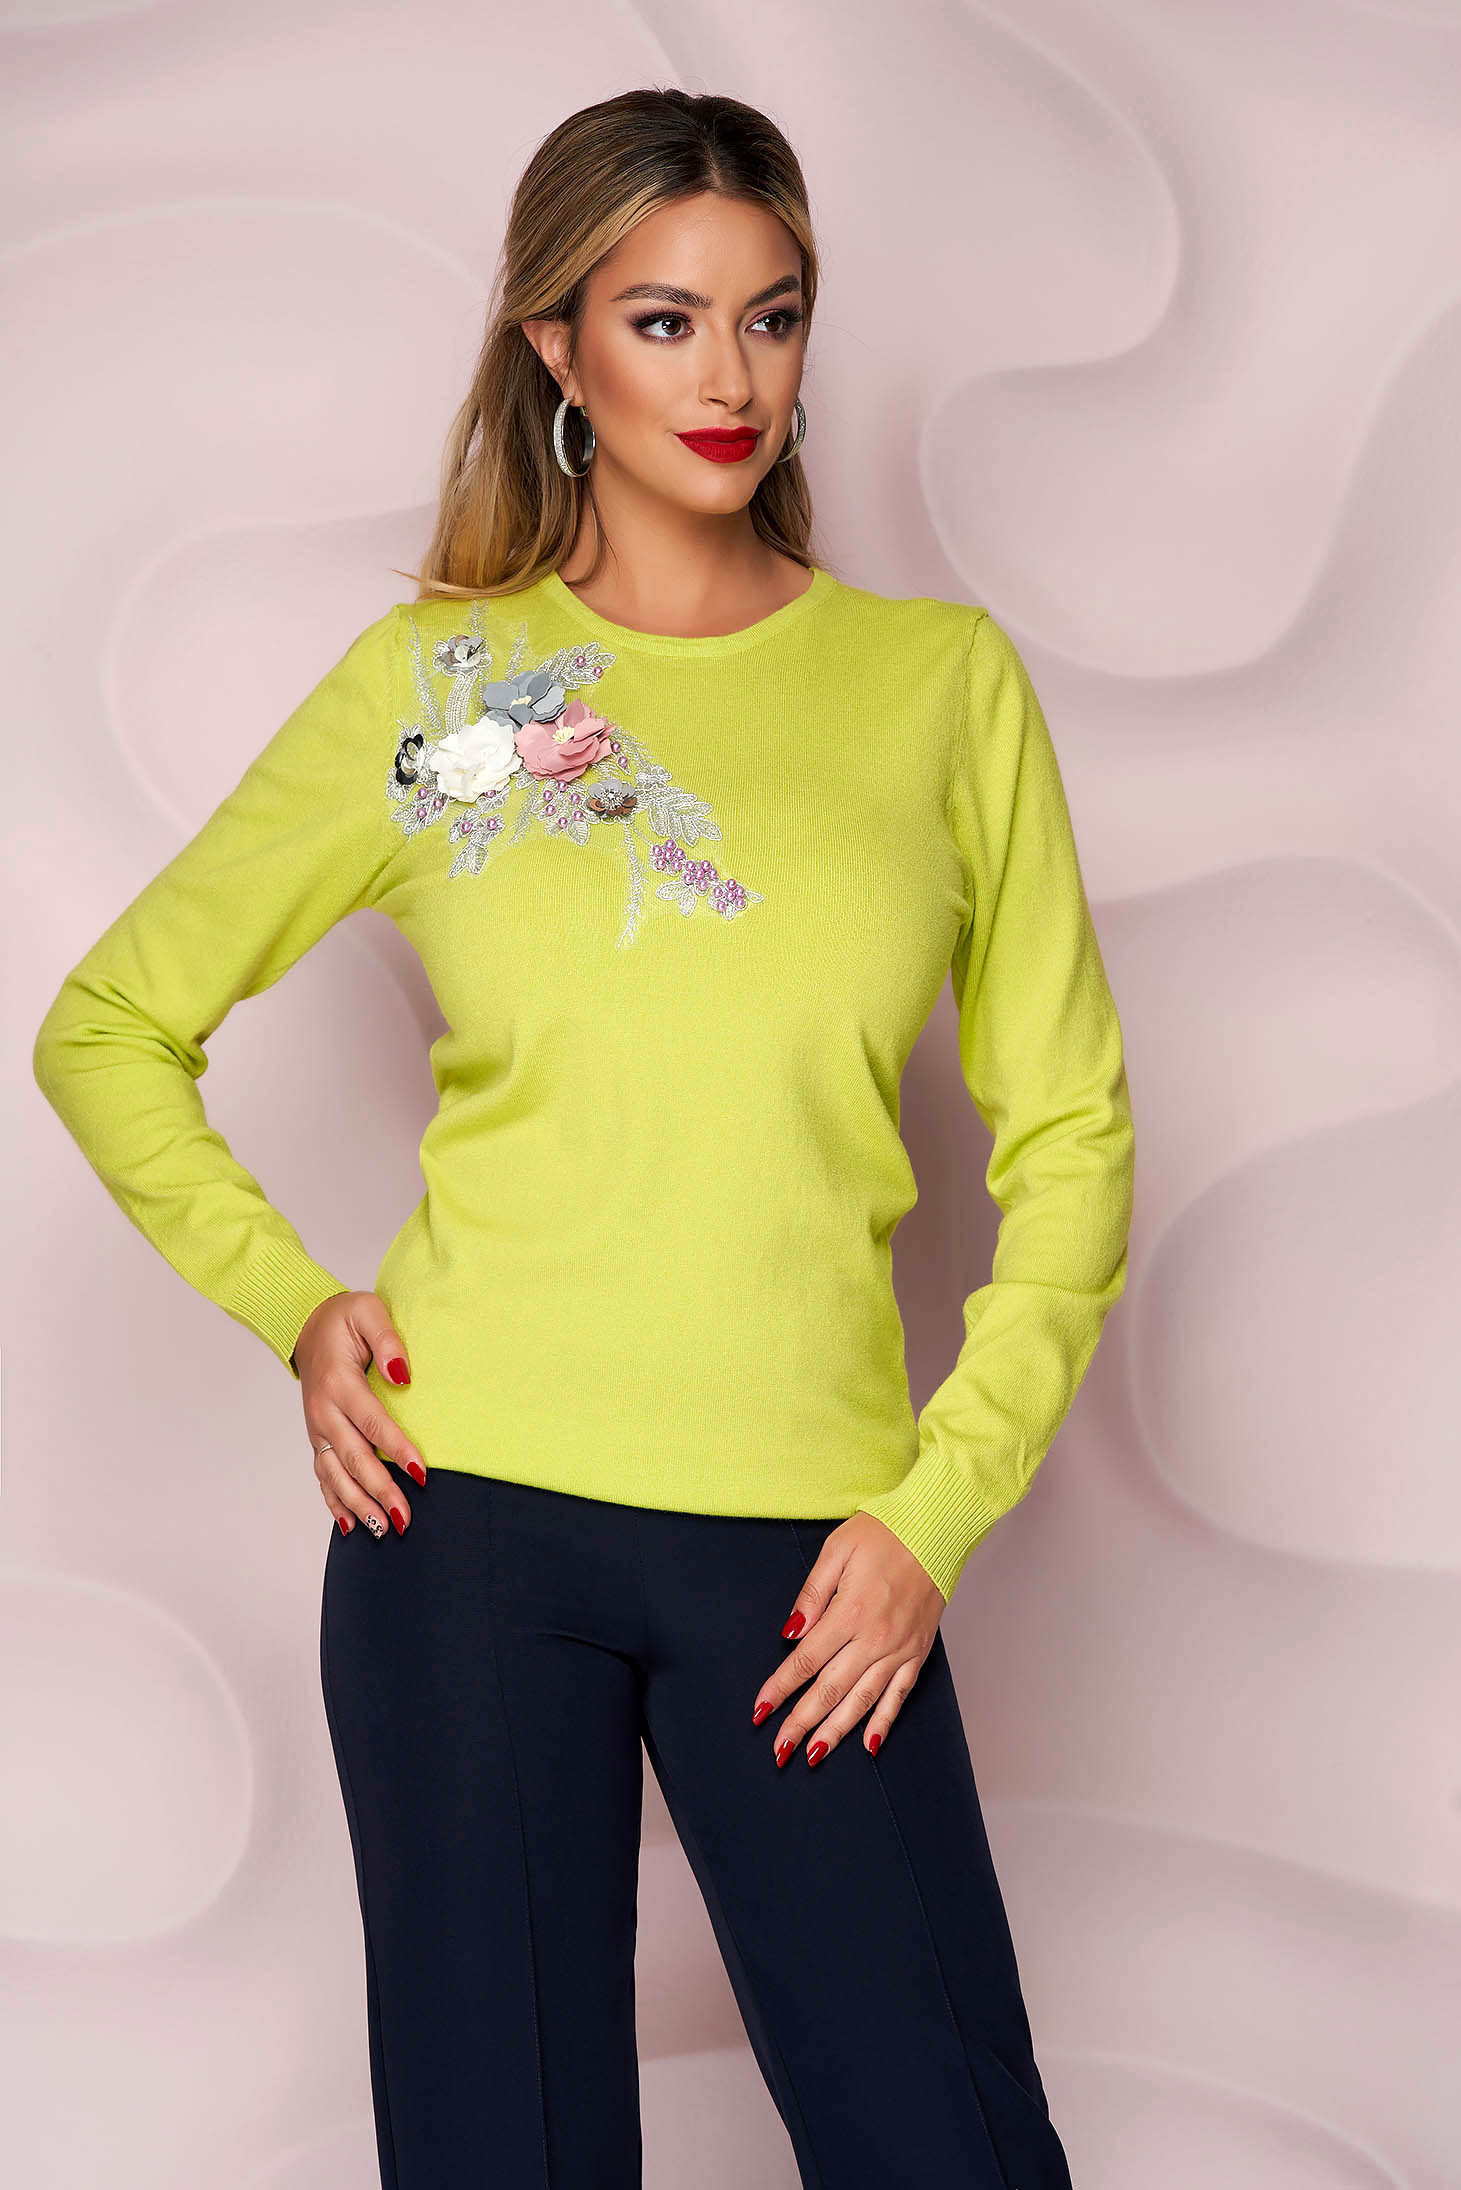 Lightgreen sweater knitted loose fit with raised flowers with 3d effect